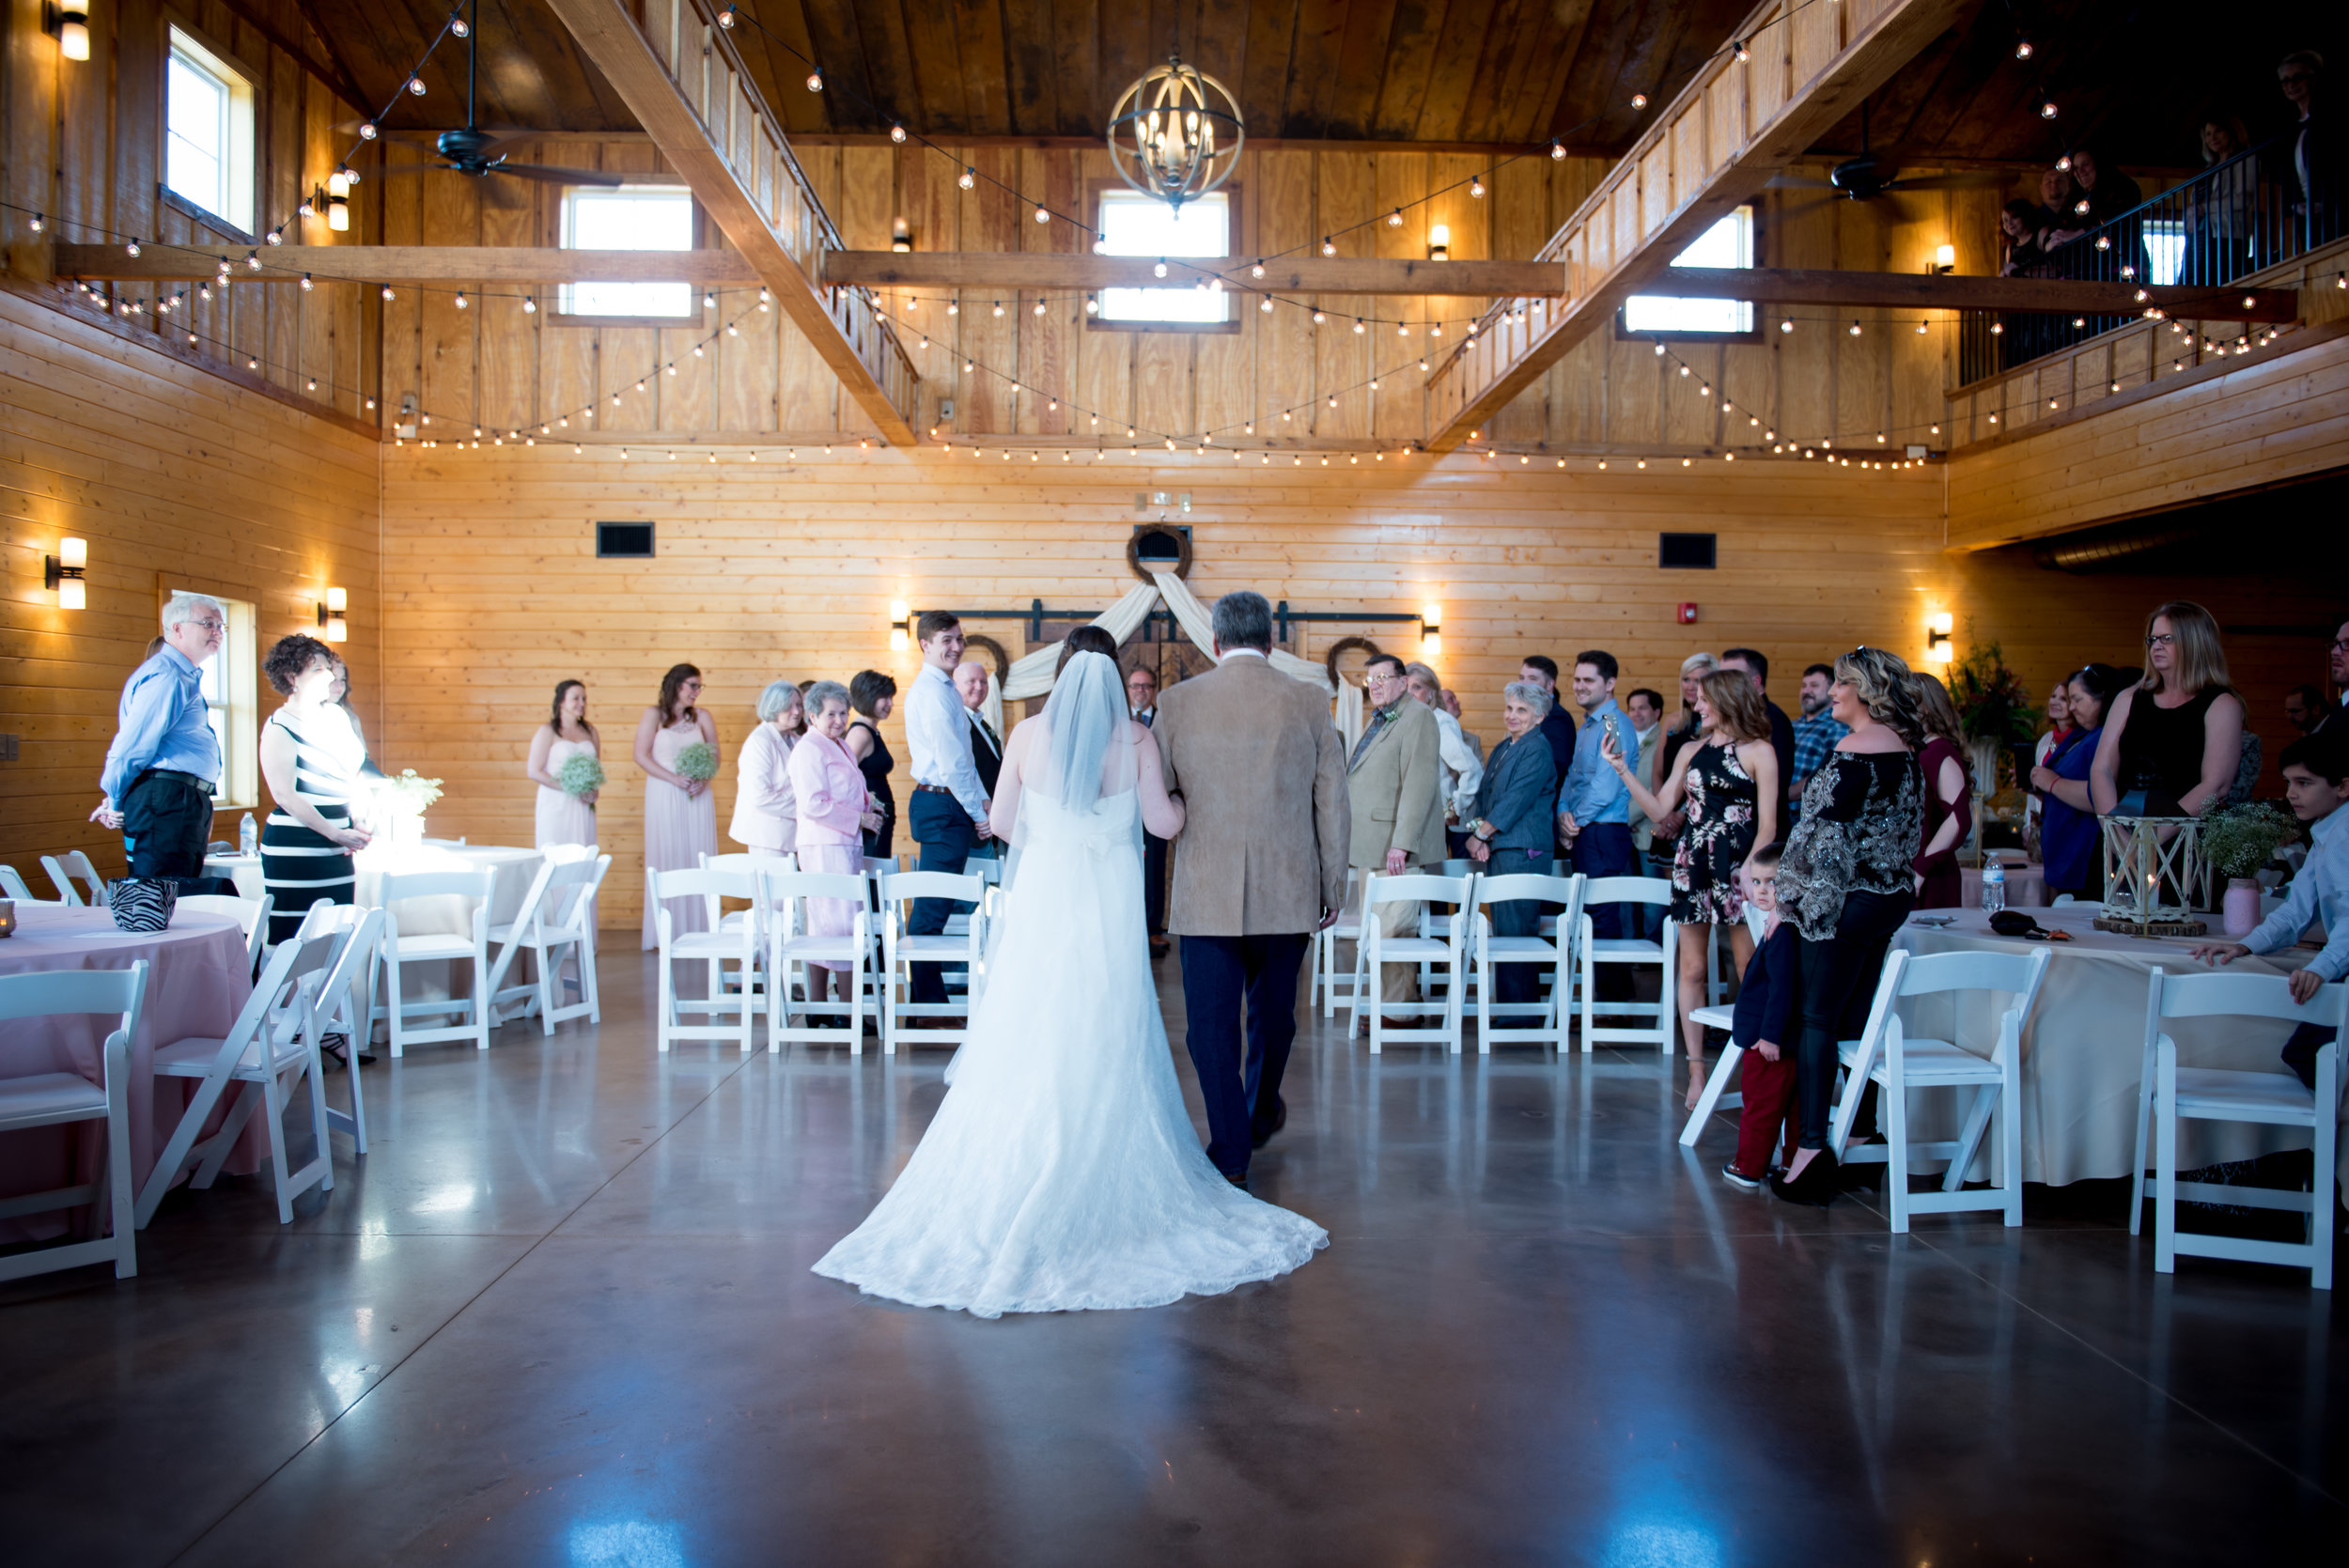 Indoor wedding ceremony at Pepper Sprout Barn. Photo by Brian Dean Photography.